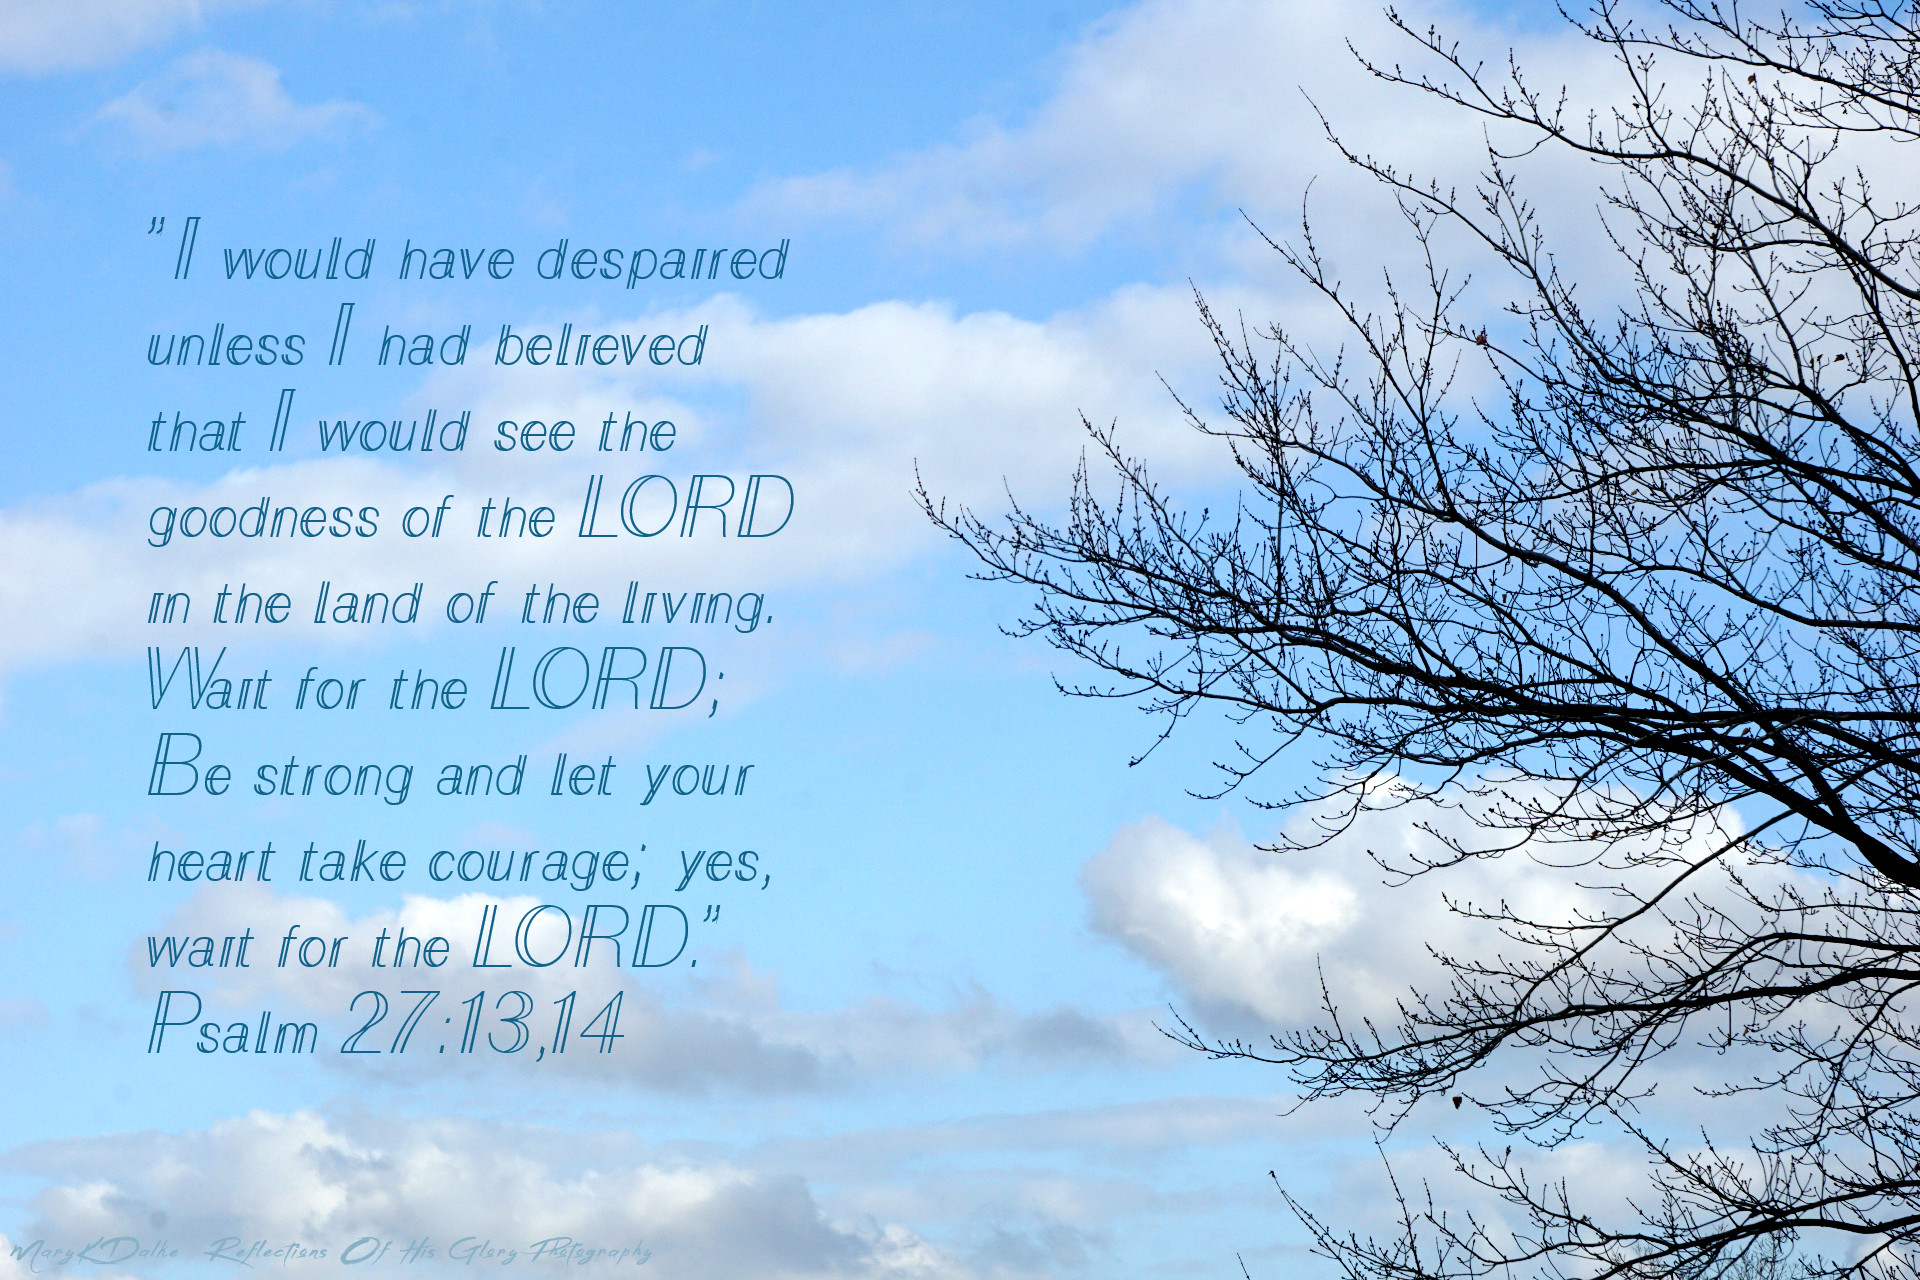 Blue Sky Collection - 11-2020 - Psalm 27 13,14 - MaryKDalke Reflections Of His Glory Photography DSC03333